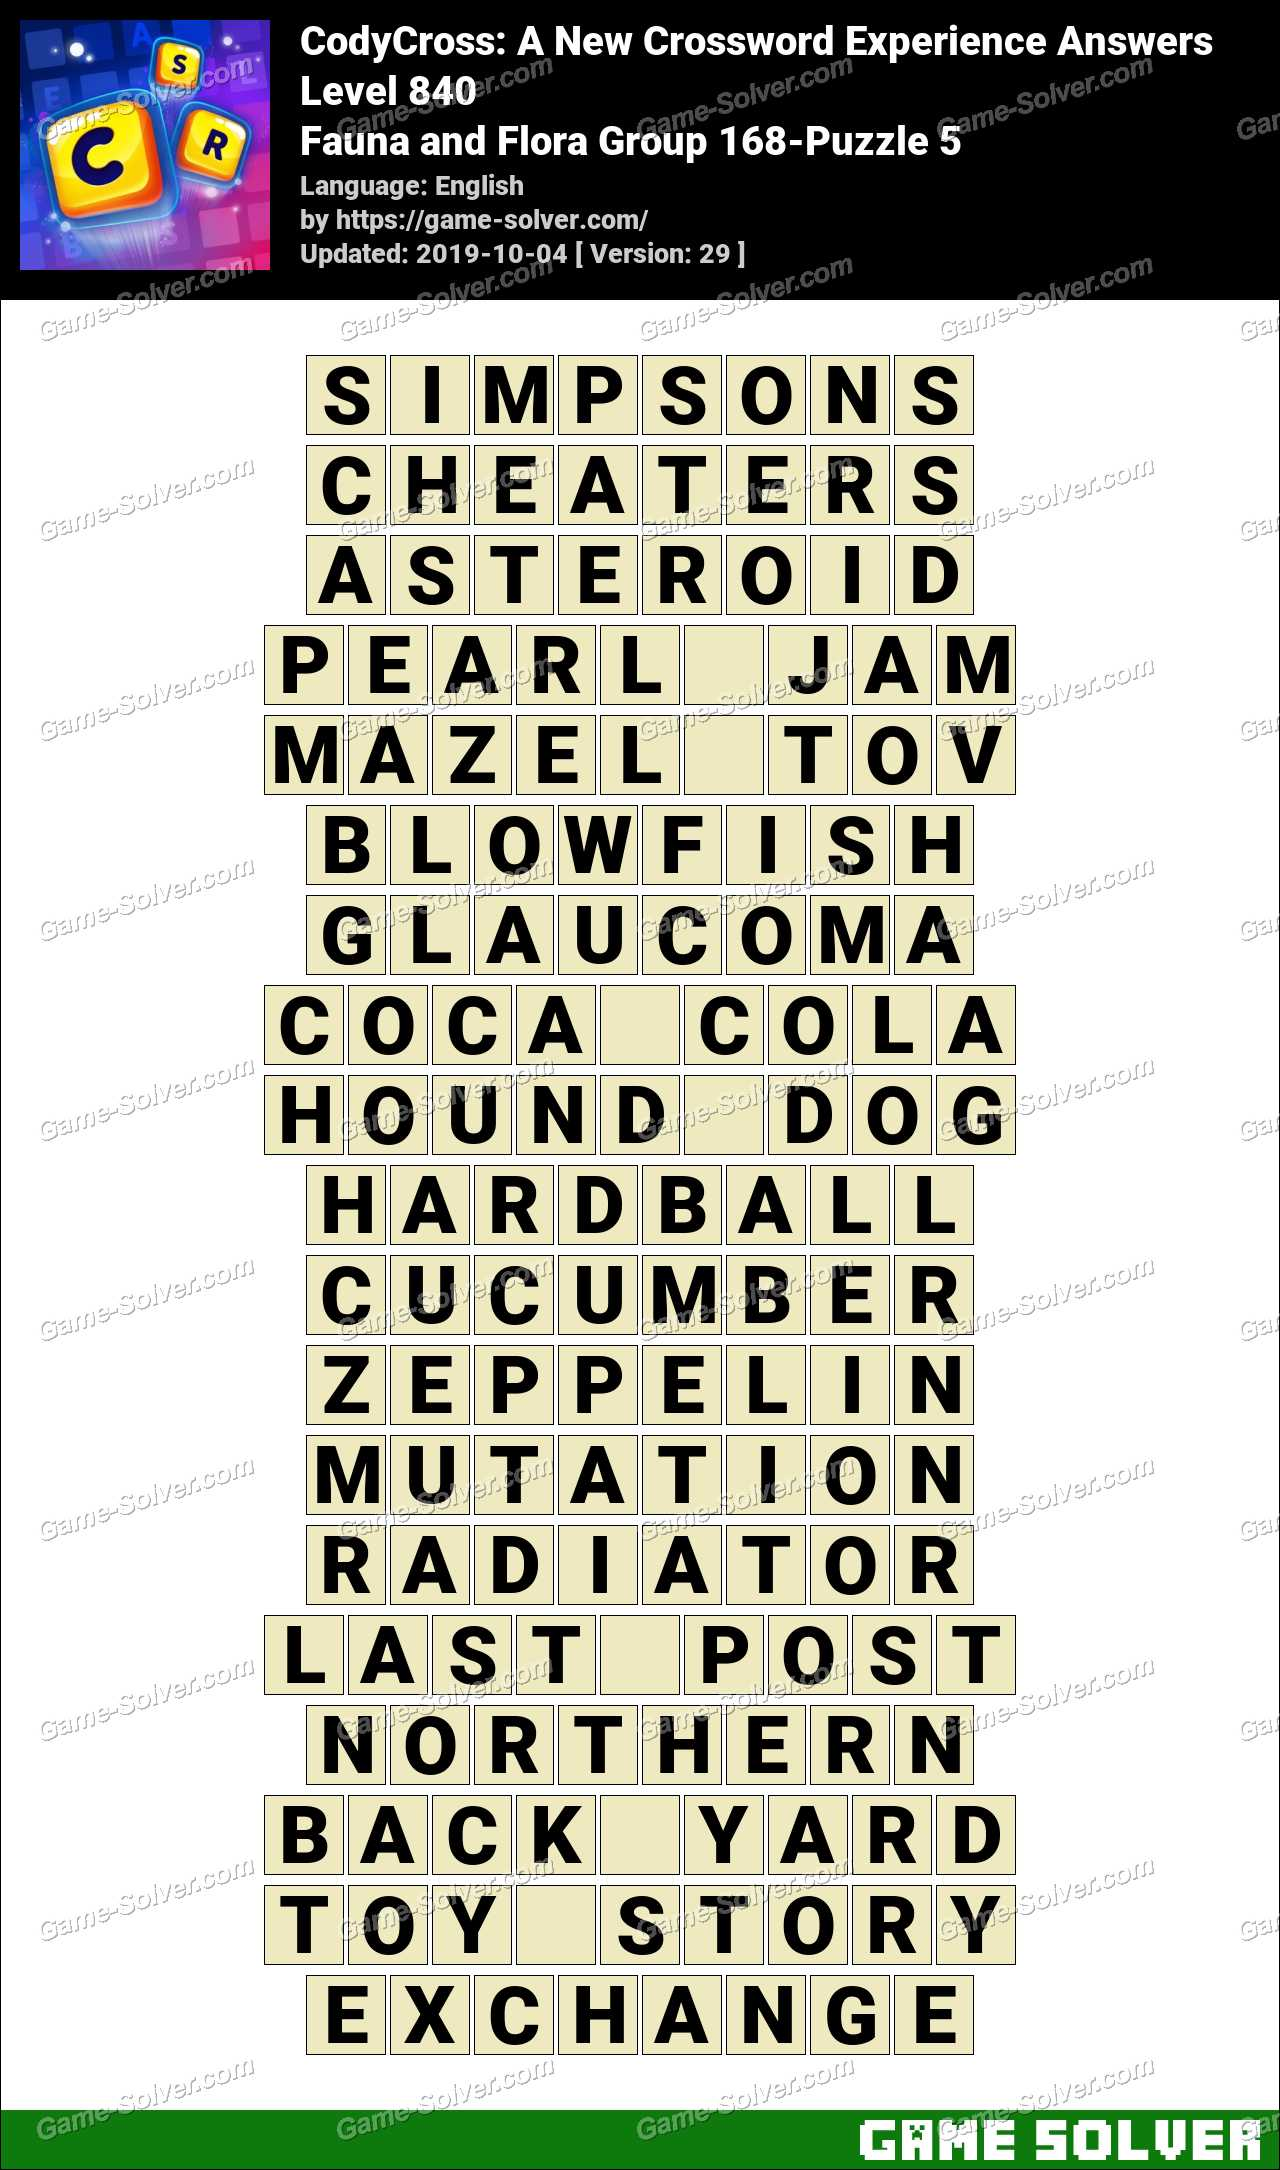 CodyCross Fauna and Flora Group 168-Puzzle 5 Answers